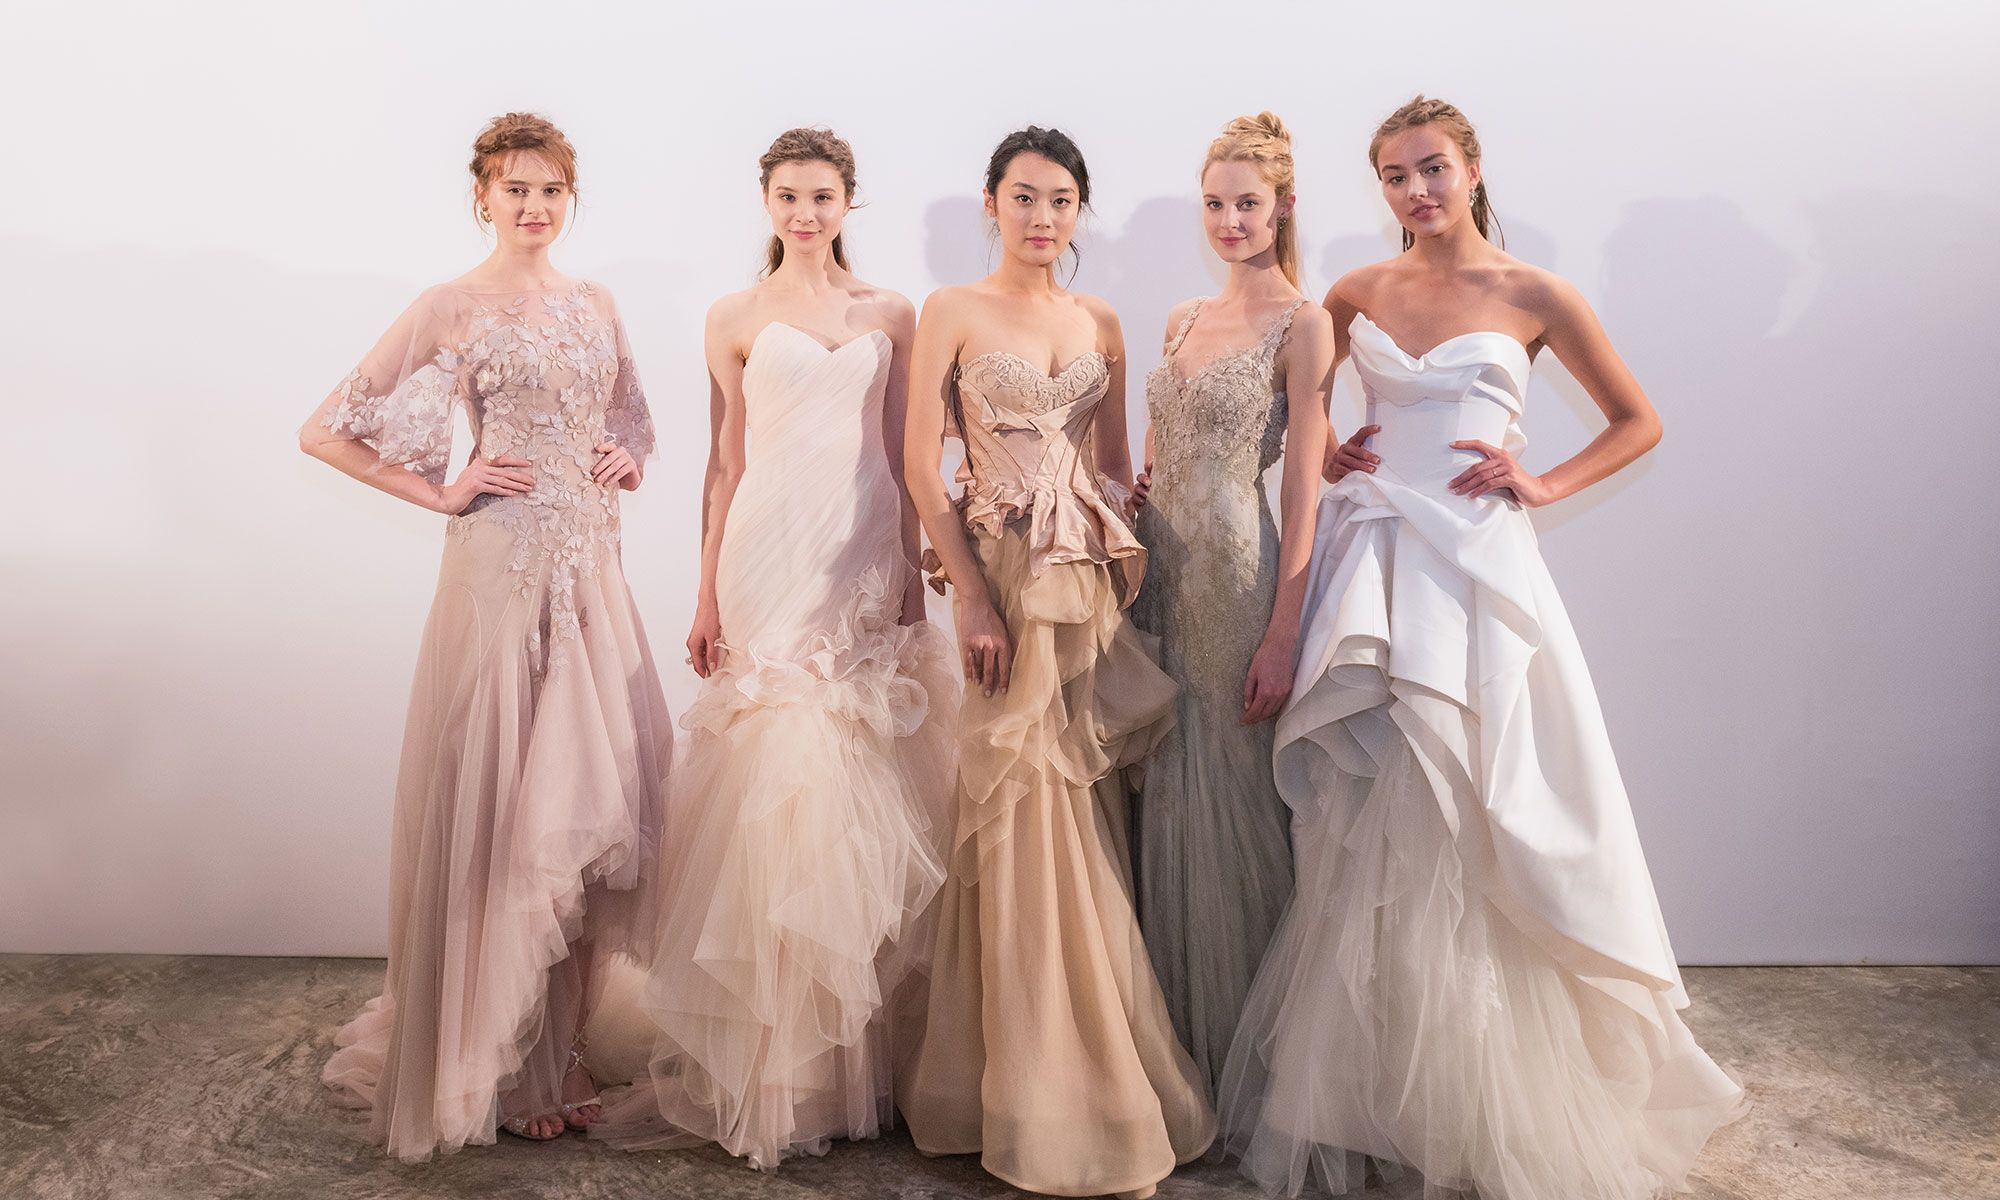 Vivian Luk Charity Fashion Show Debuts Bridal Wear and Junior Collection